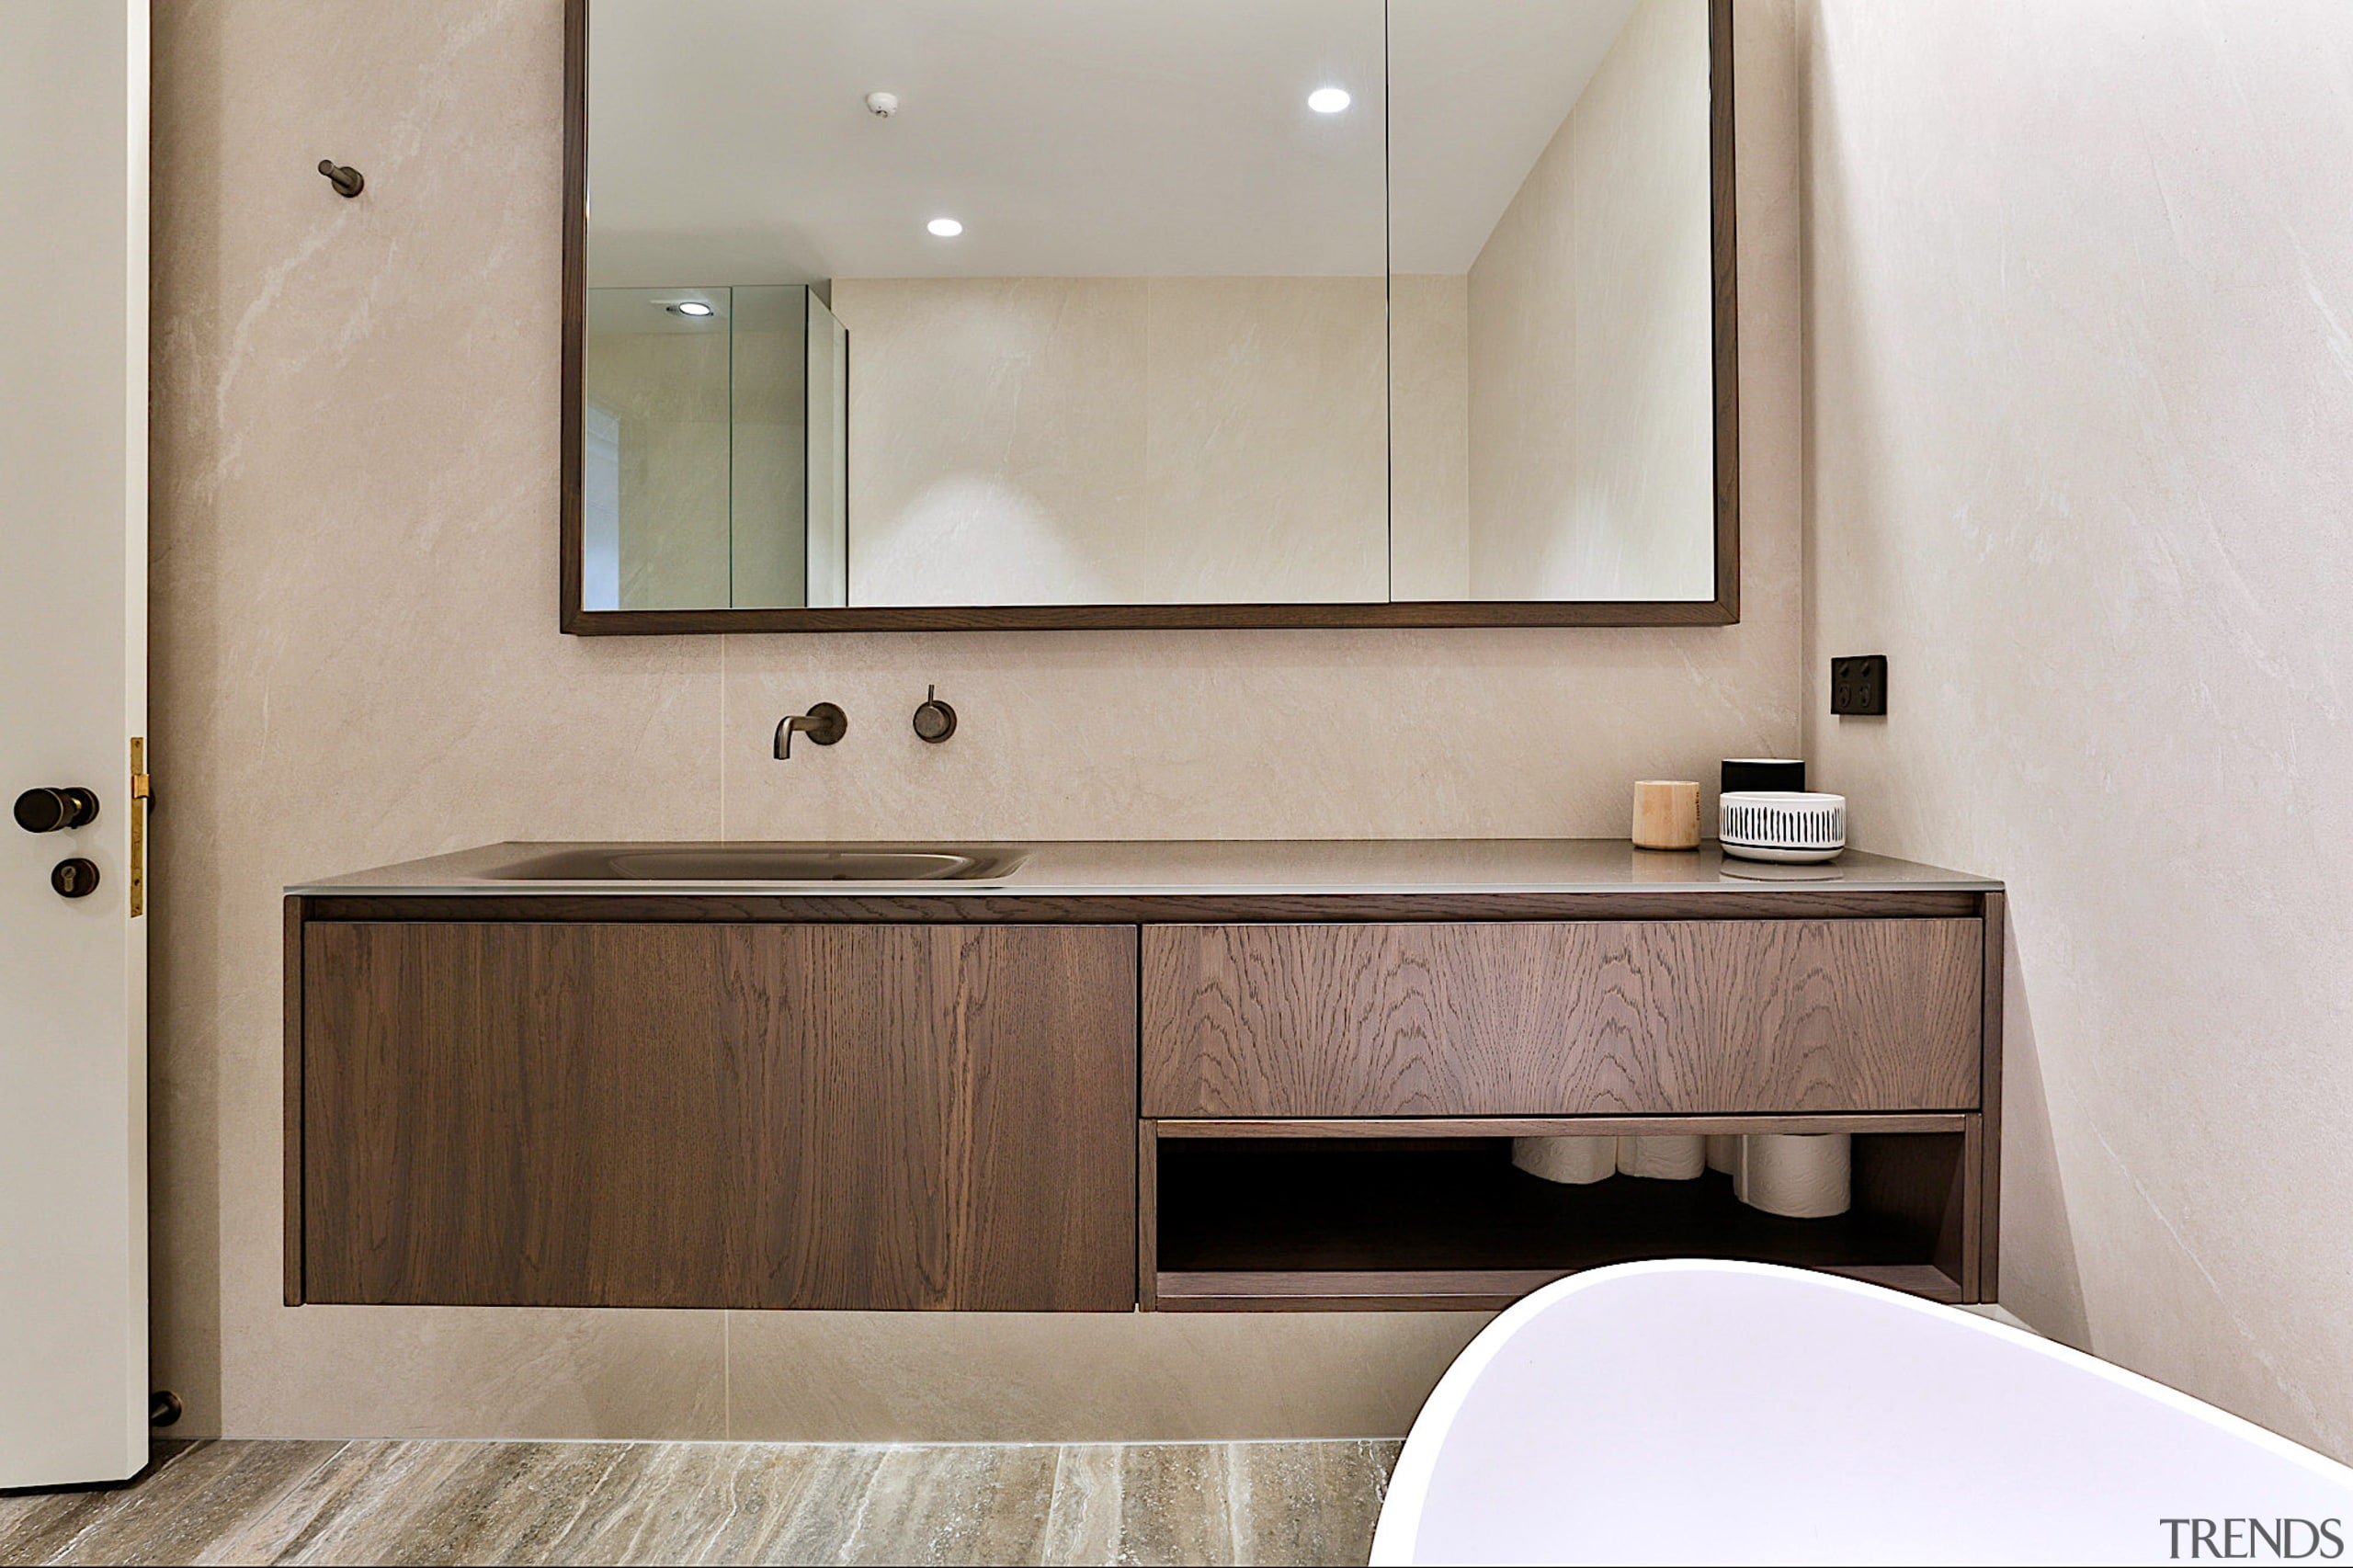 This bathroom's vanity combines a Falper glass benchtop